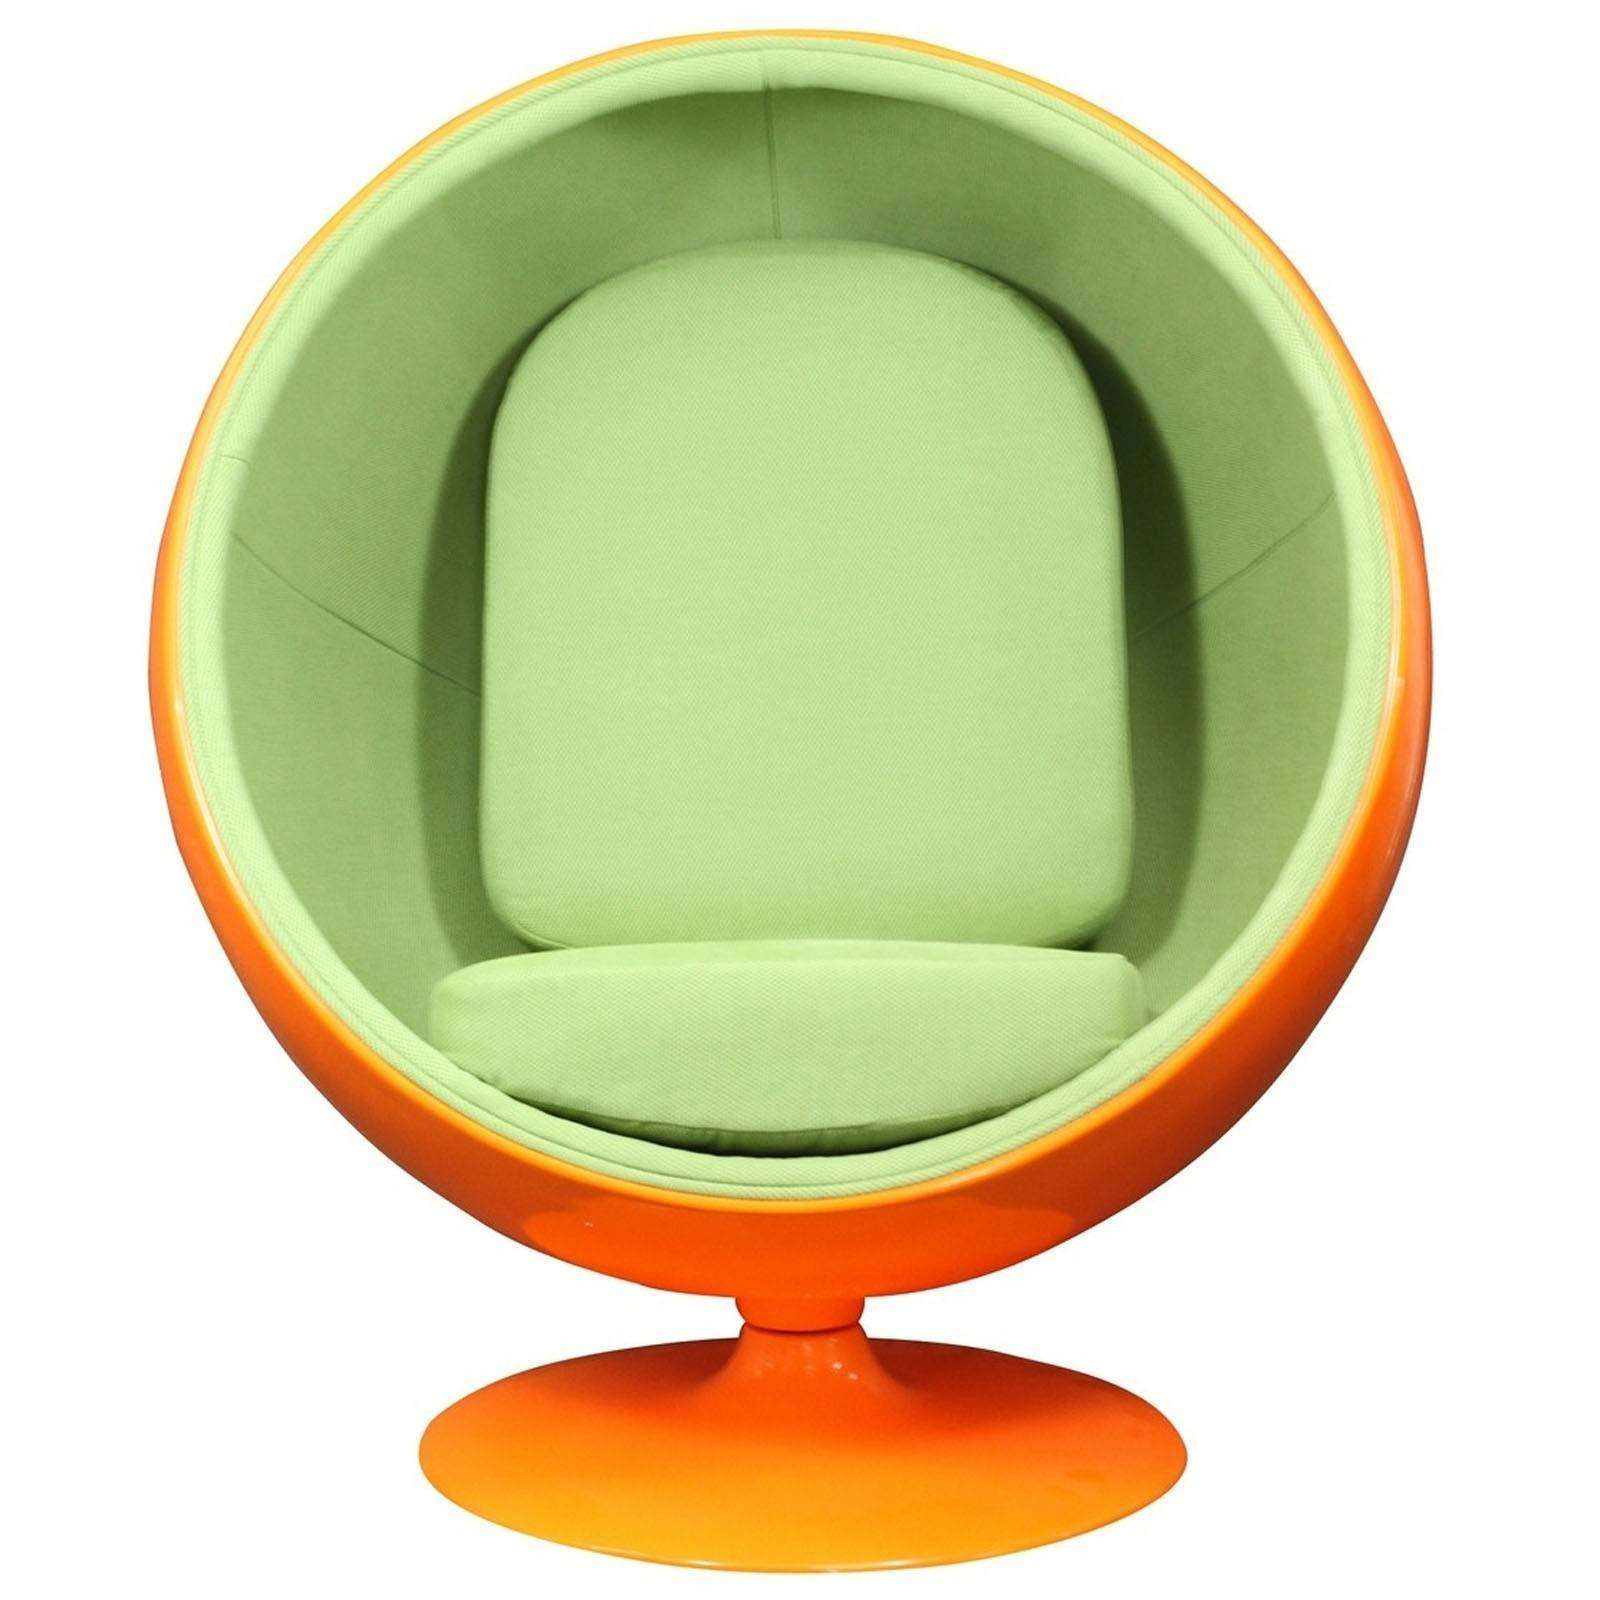 knoll spark chair review swivel hub liner eero aarnio style ball